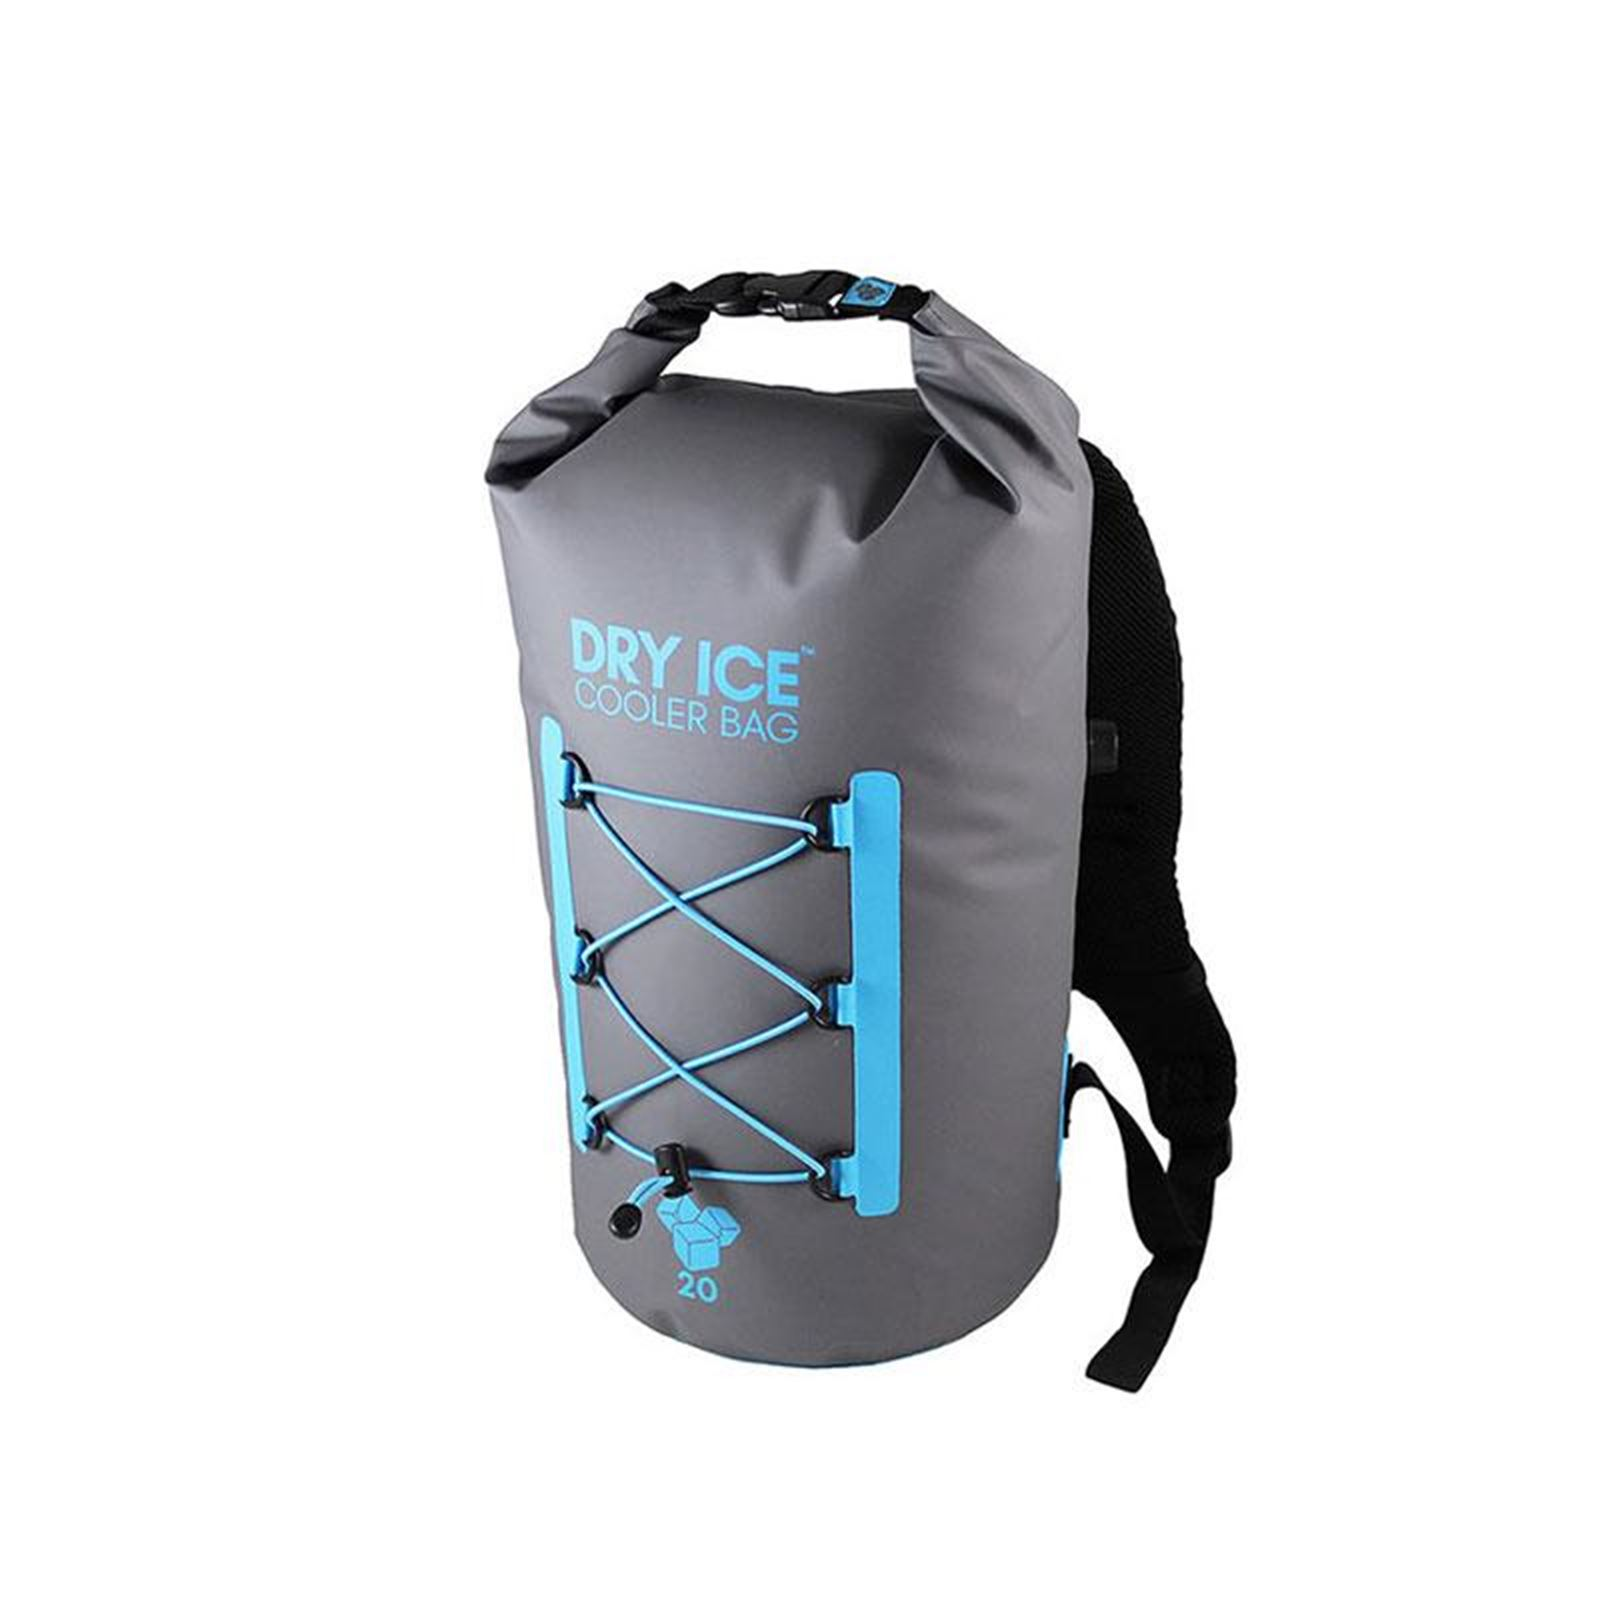 Dry Ice Premium Cooler Backpack 20 Lit - Gray